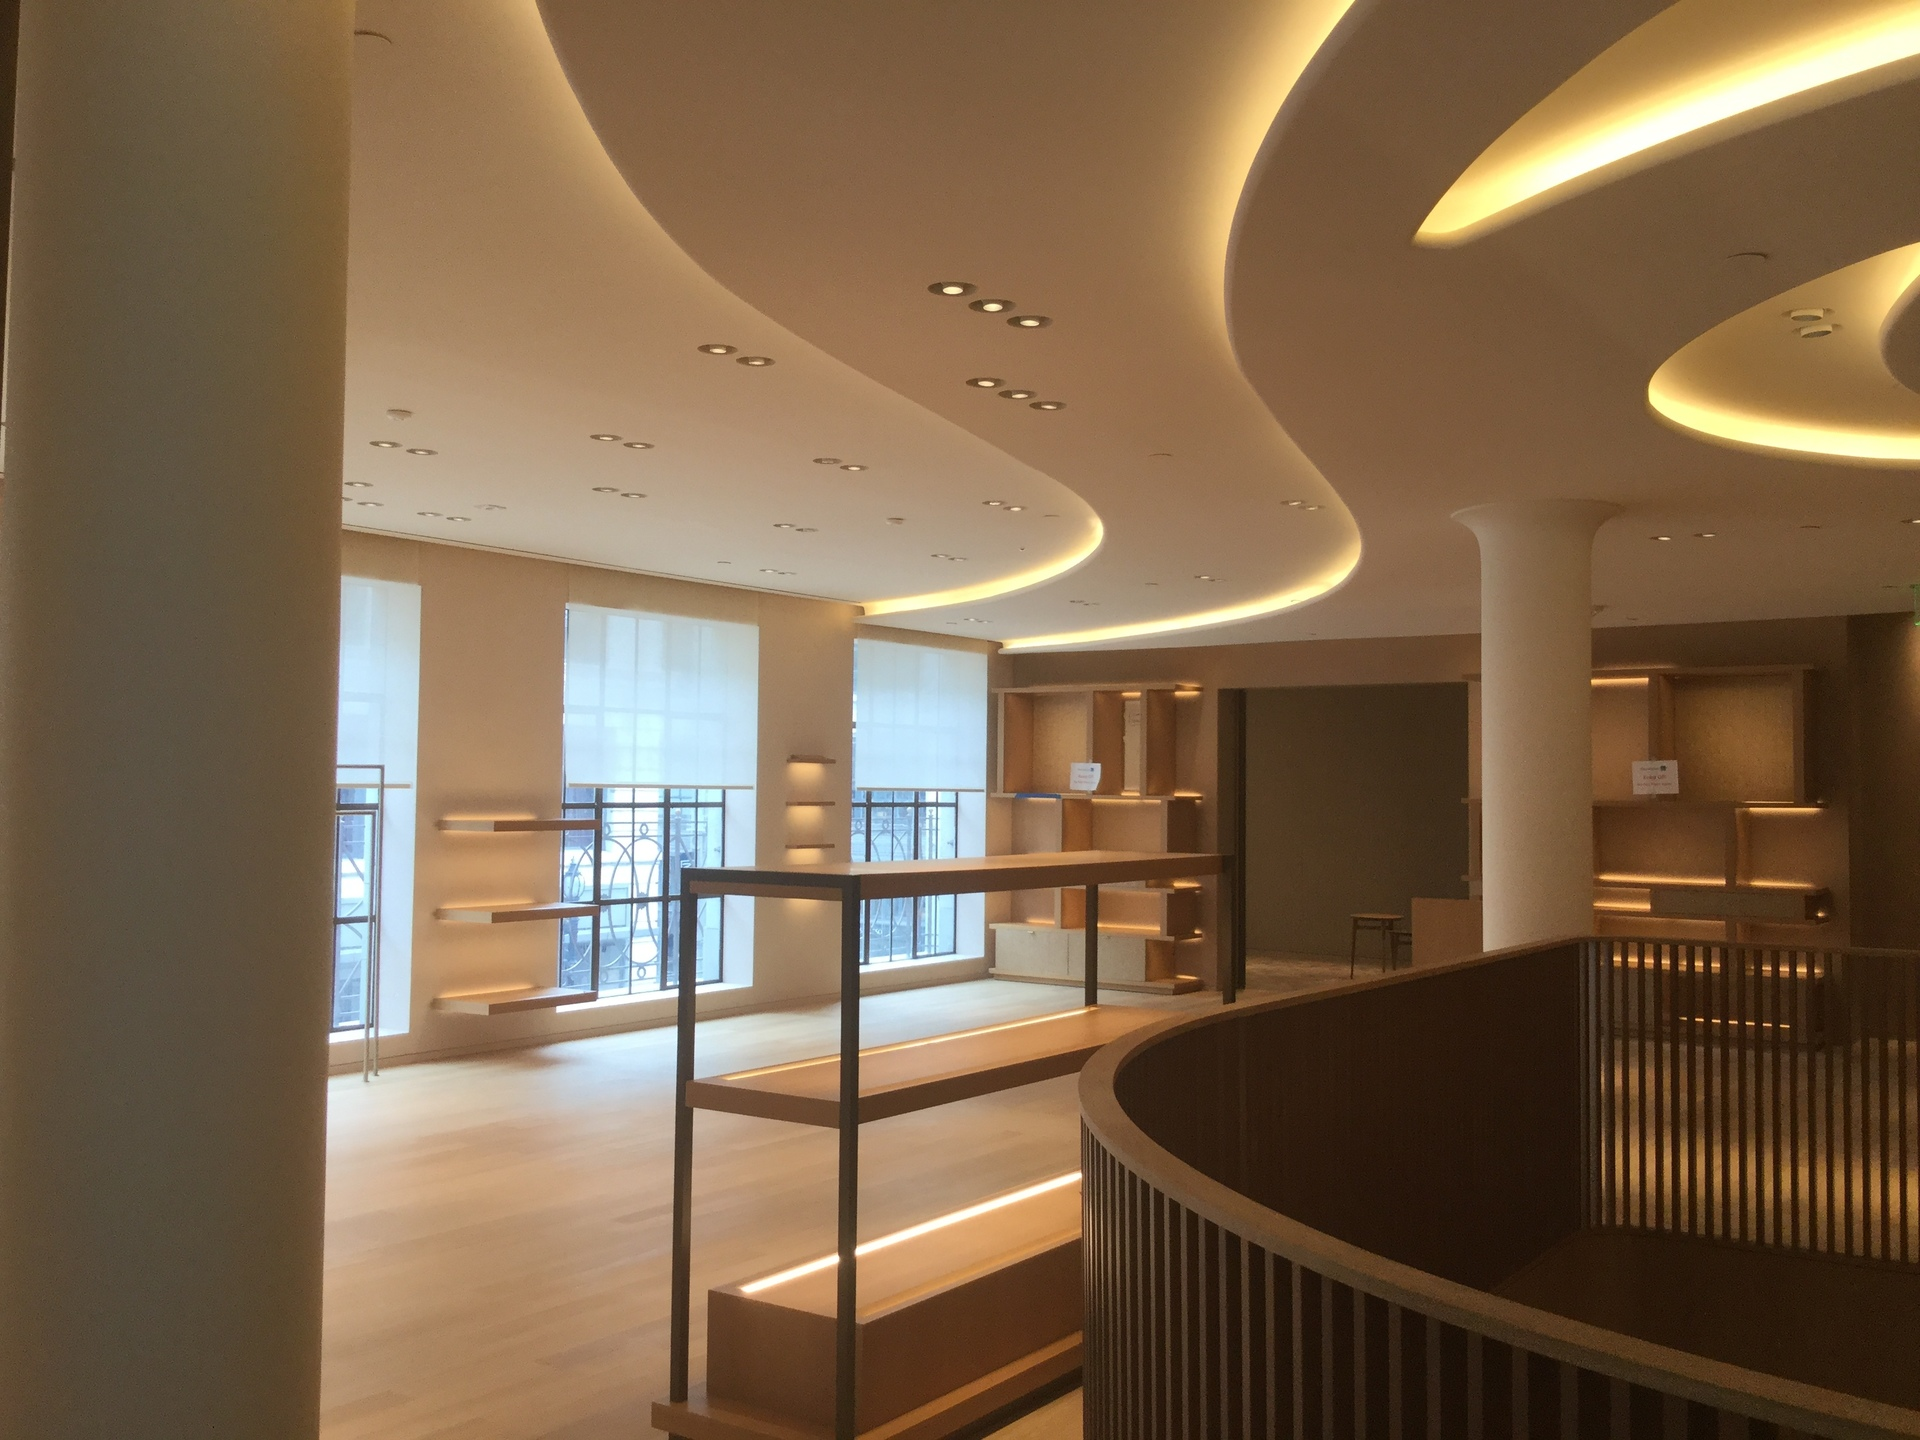 GC Products manufactured custom Glass Fiber Reinforced Gypsum (GFRG) light coves, reflectors, and columns for the Hermès West Coast flagship store.